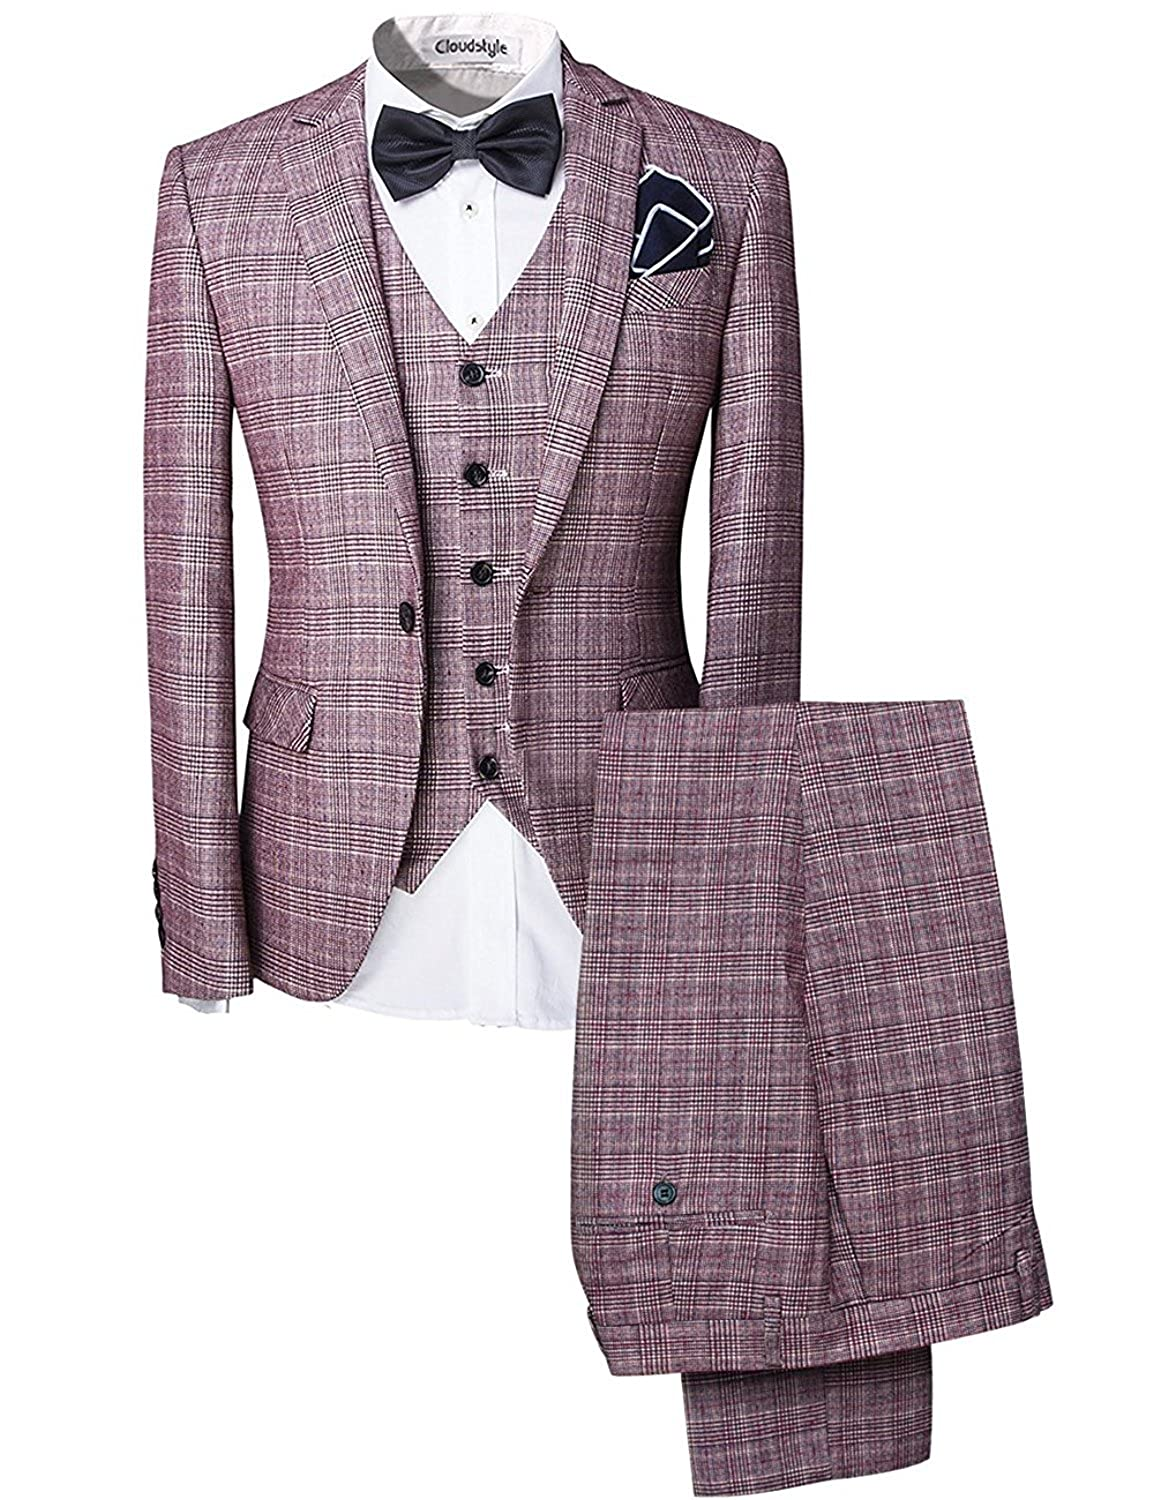 1920s Men's Suits History Cloudstyle Mens 3-Piece Suit One Button Plaid Dress Blazer Jacket & Vest & Trousers Set $95.99 AT vintagedancer.com